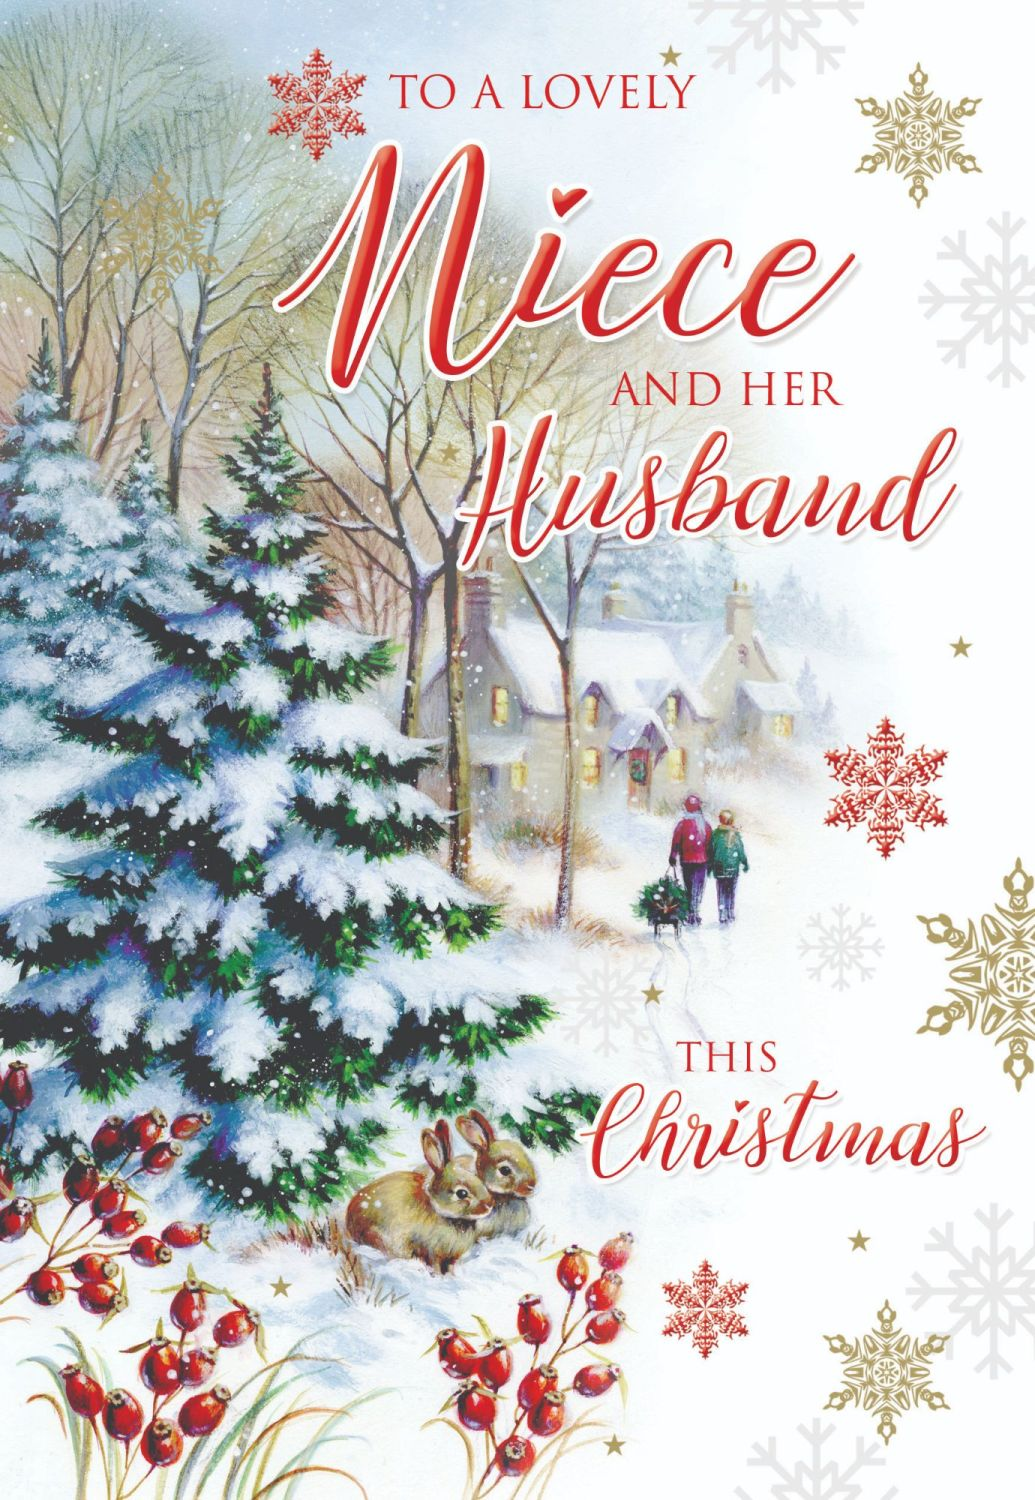 Niece & Husband Christmas Card - To A LOVELY Niece & HER Husband THIS Chris